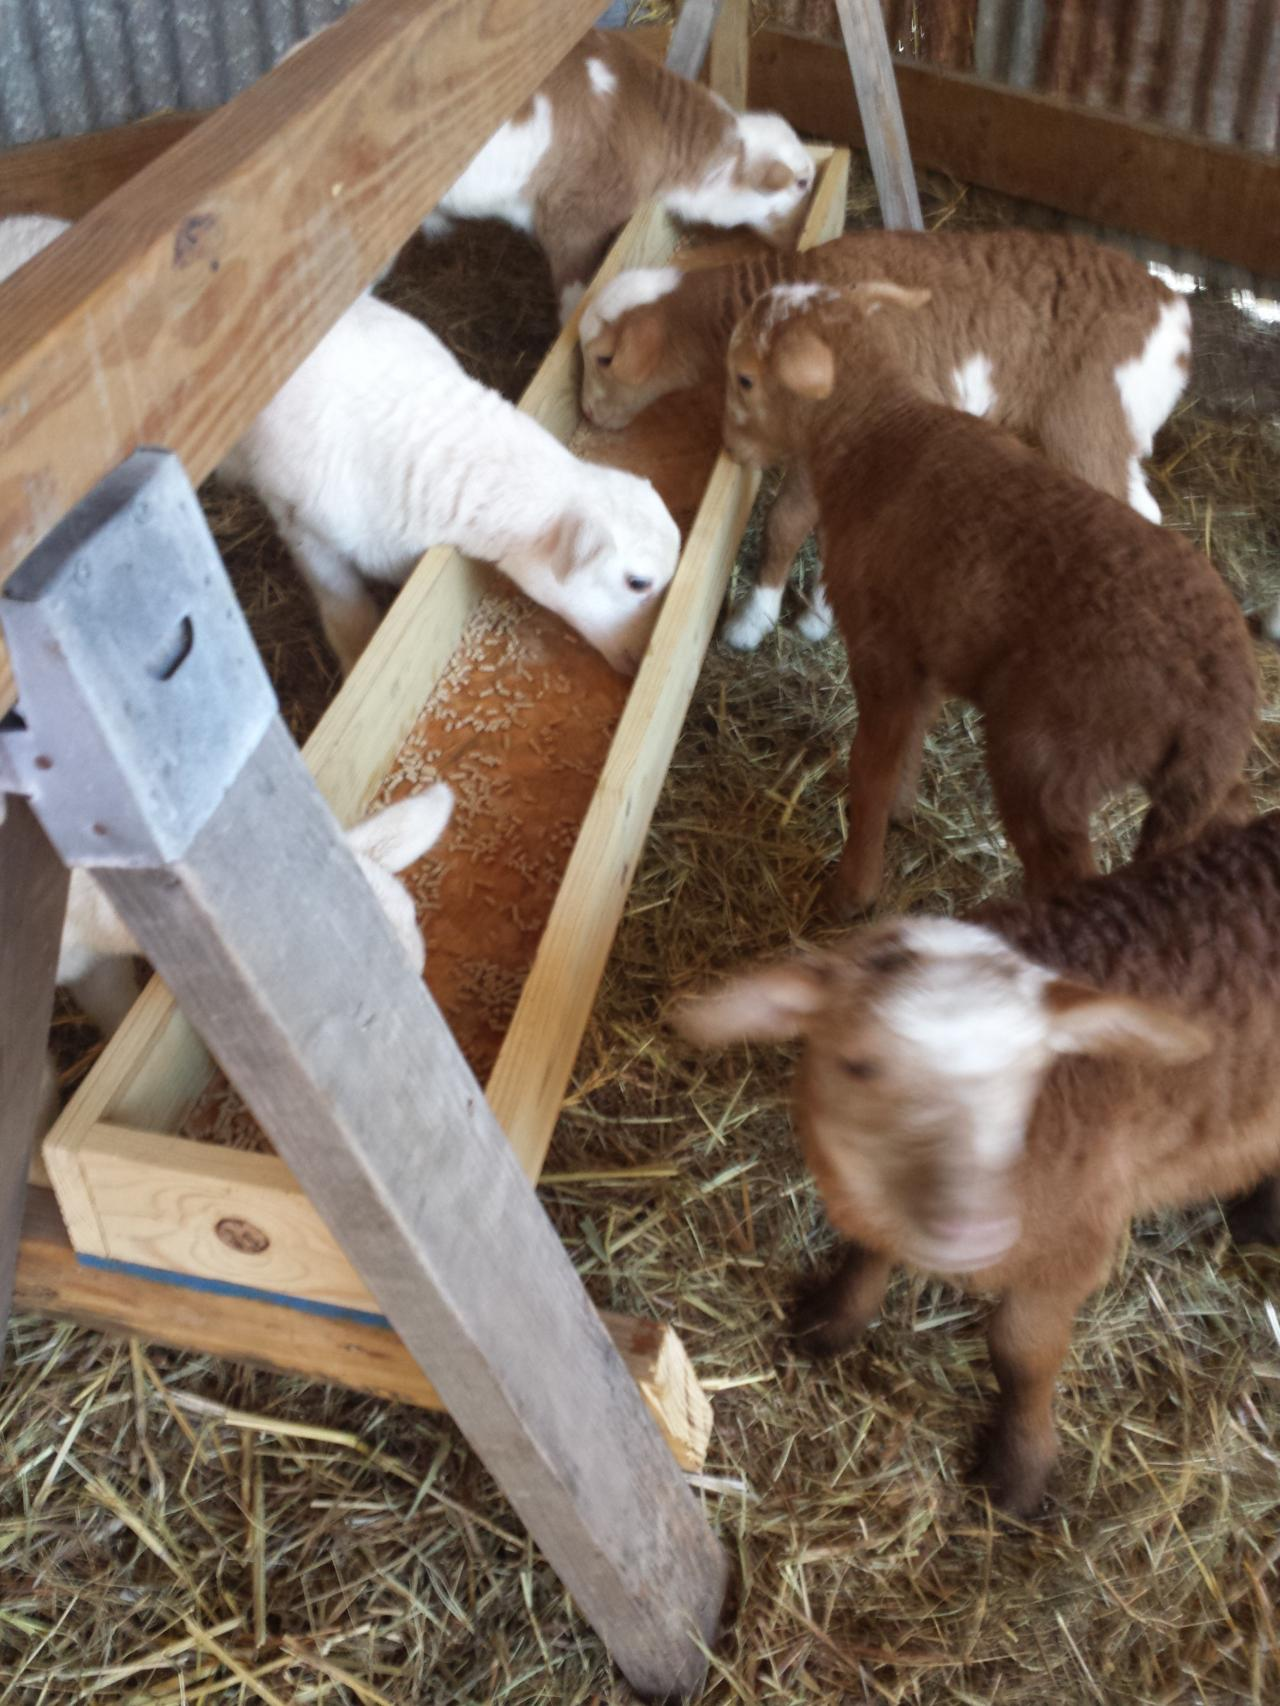 Dautobi Acres - Small scale sheep keeping - Shelter